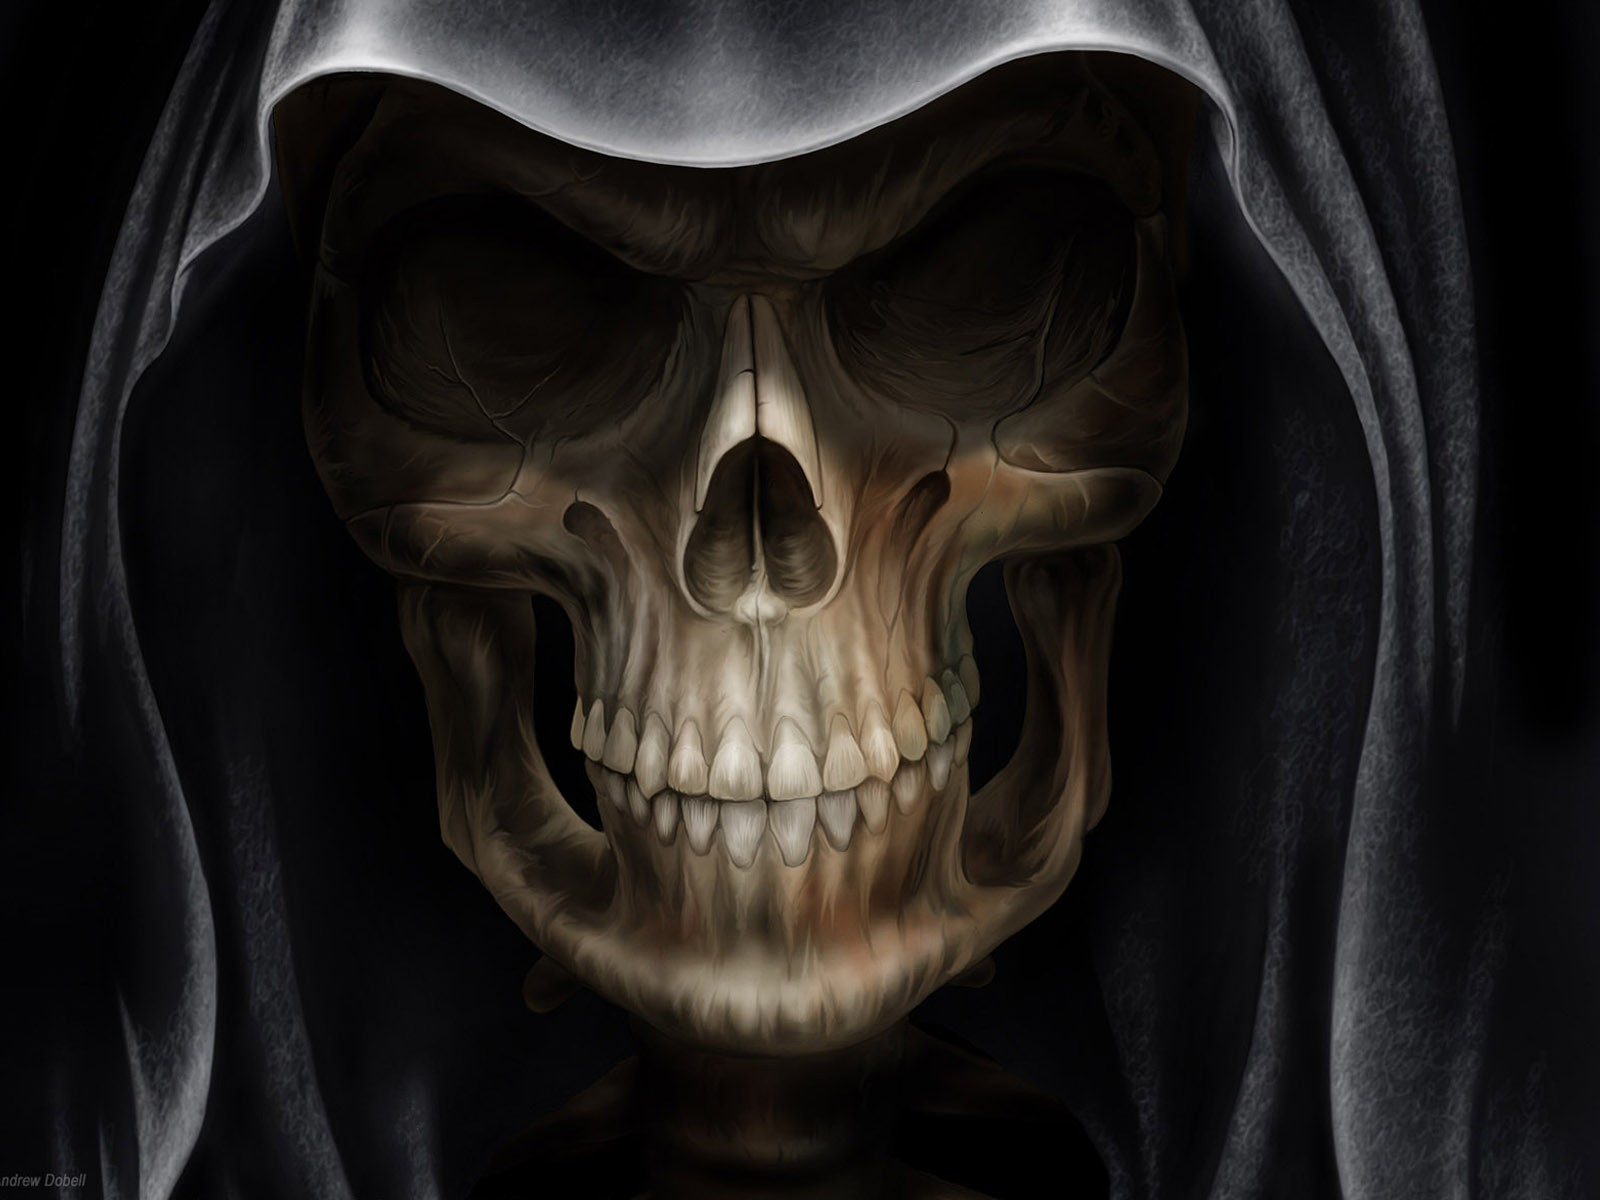 hamlet face to face with death You have the shape of the dead king of denmark  horatio: it is the ghost of our  dead king – king hamlet  horatio: his face was pale and sad, my lord.